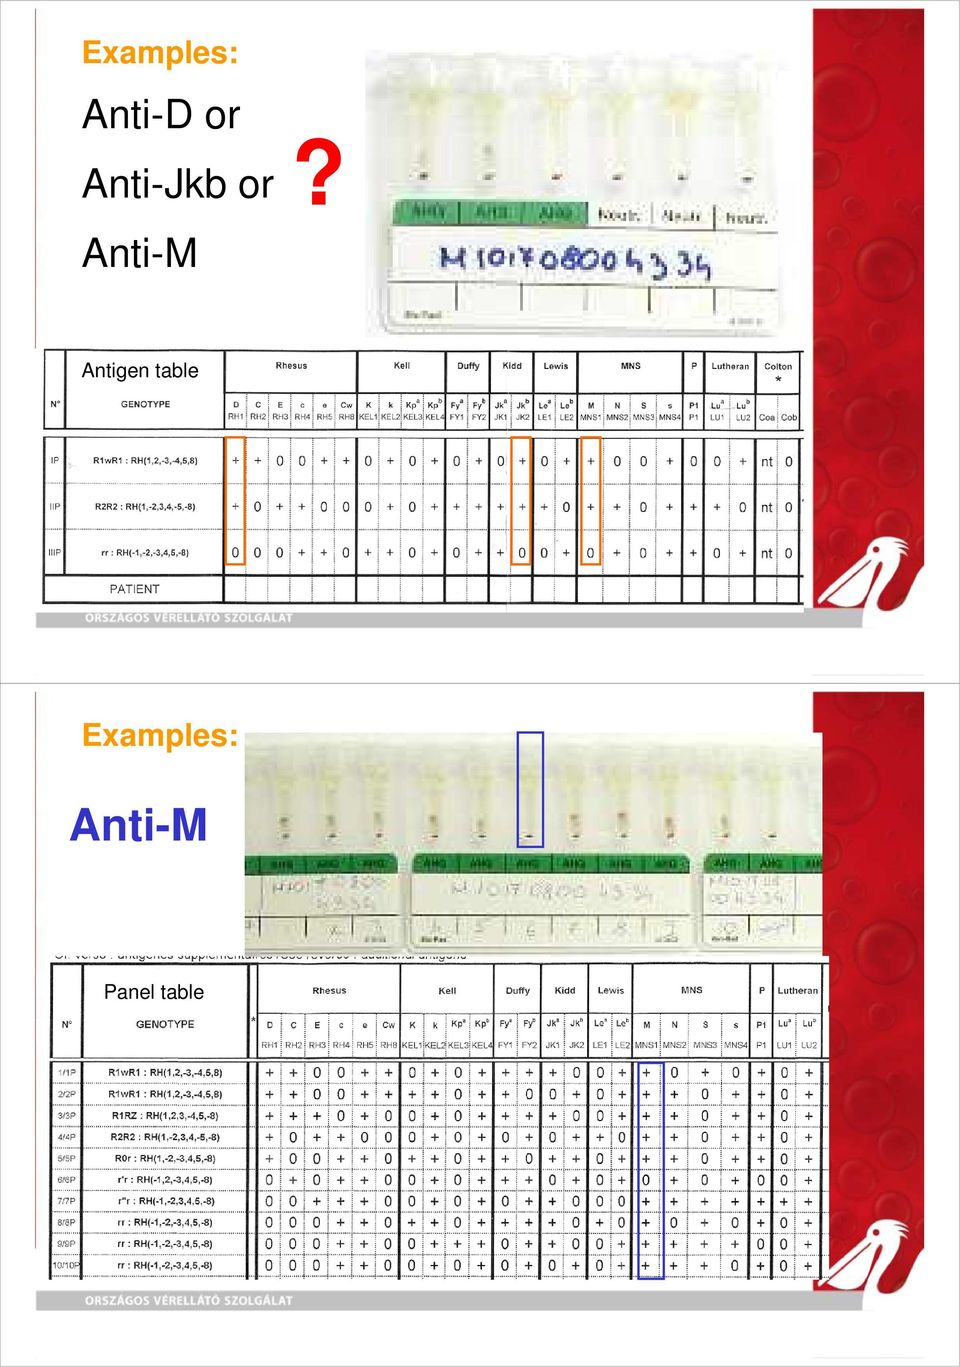 Antigen table